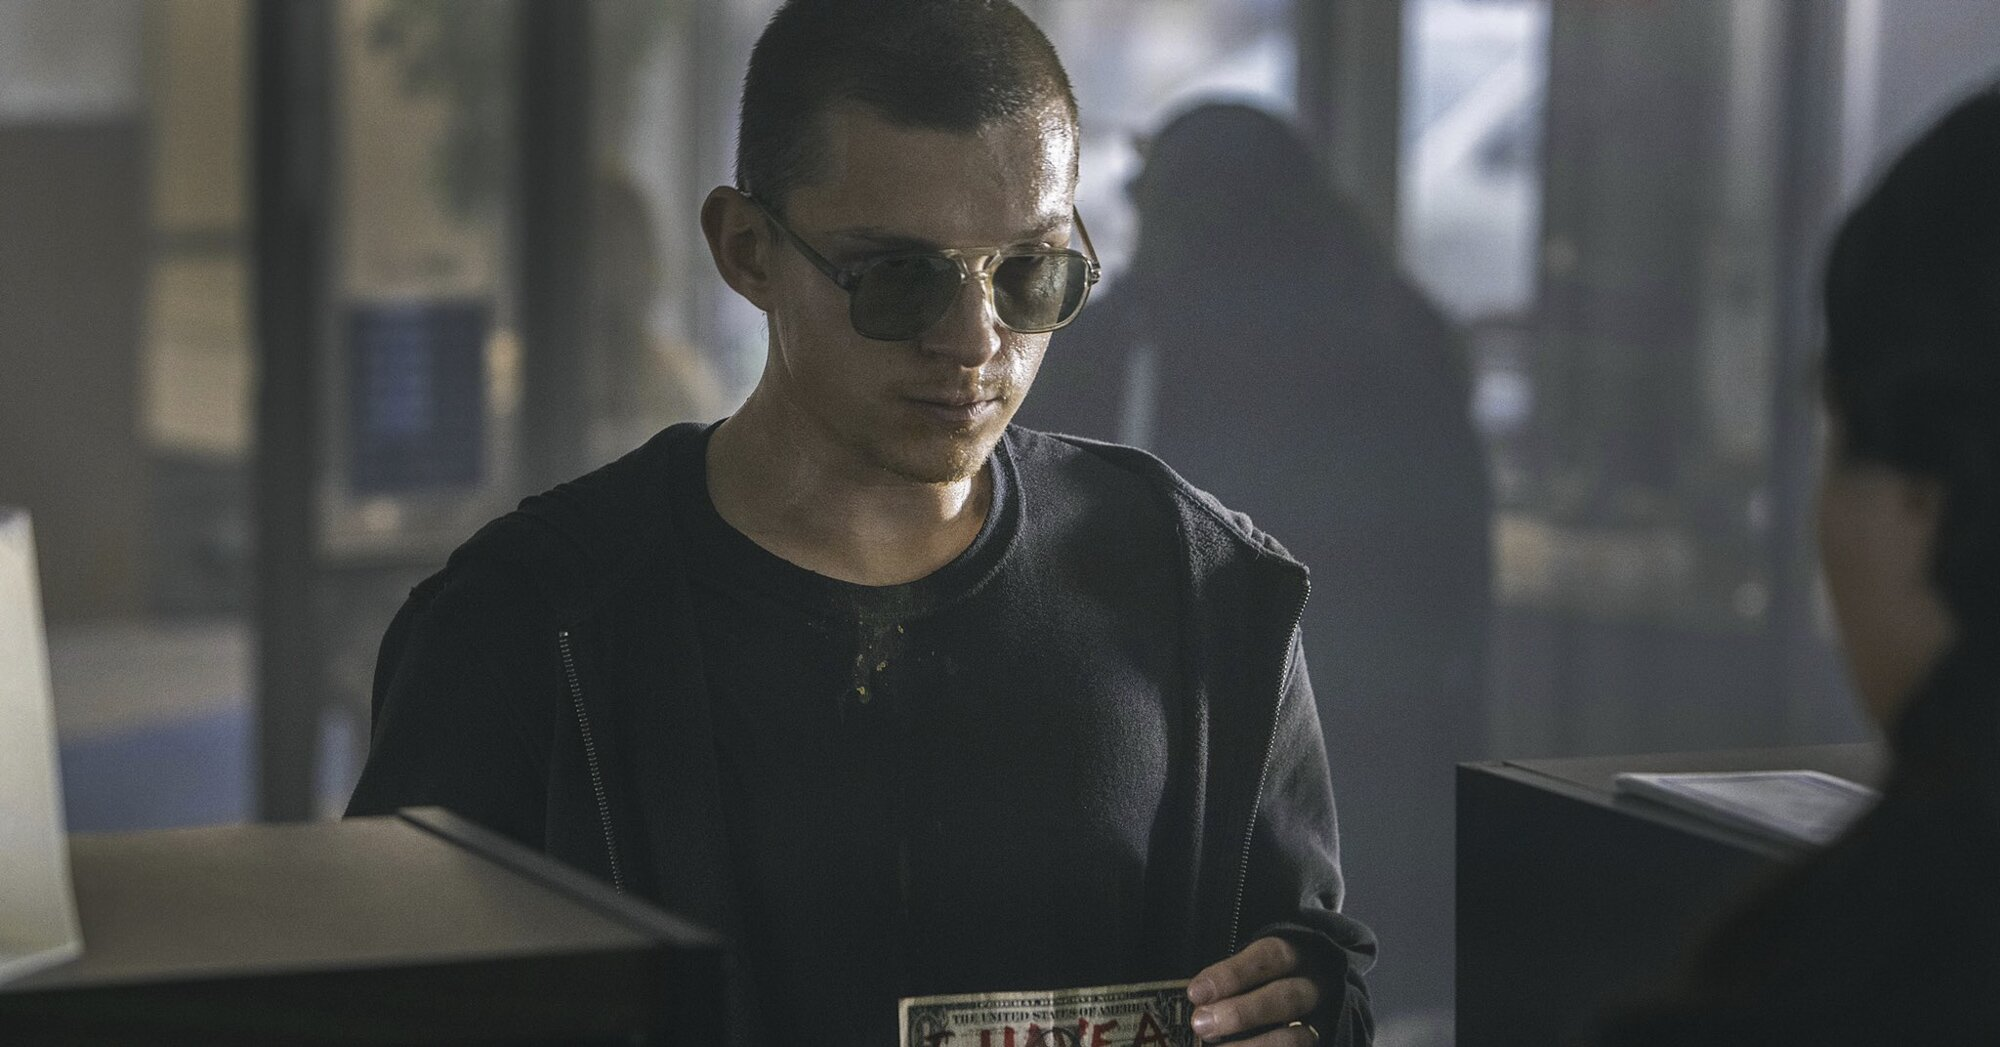 War-weary Tom Holland becomes a bank robber in new 'Cherry' photos